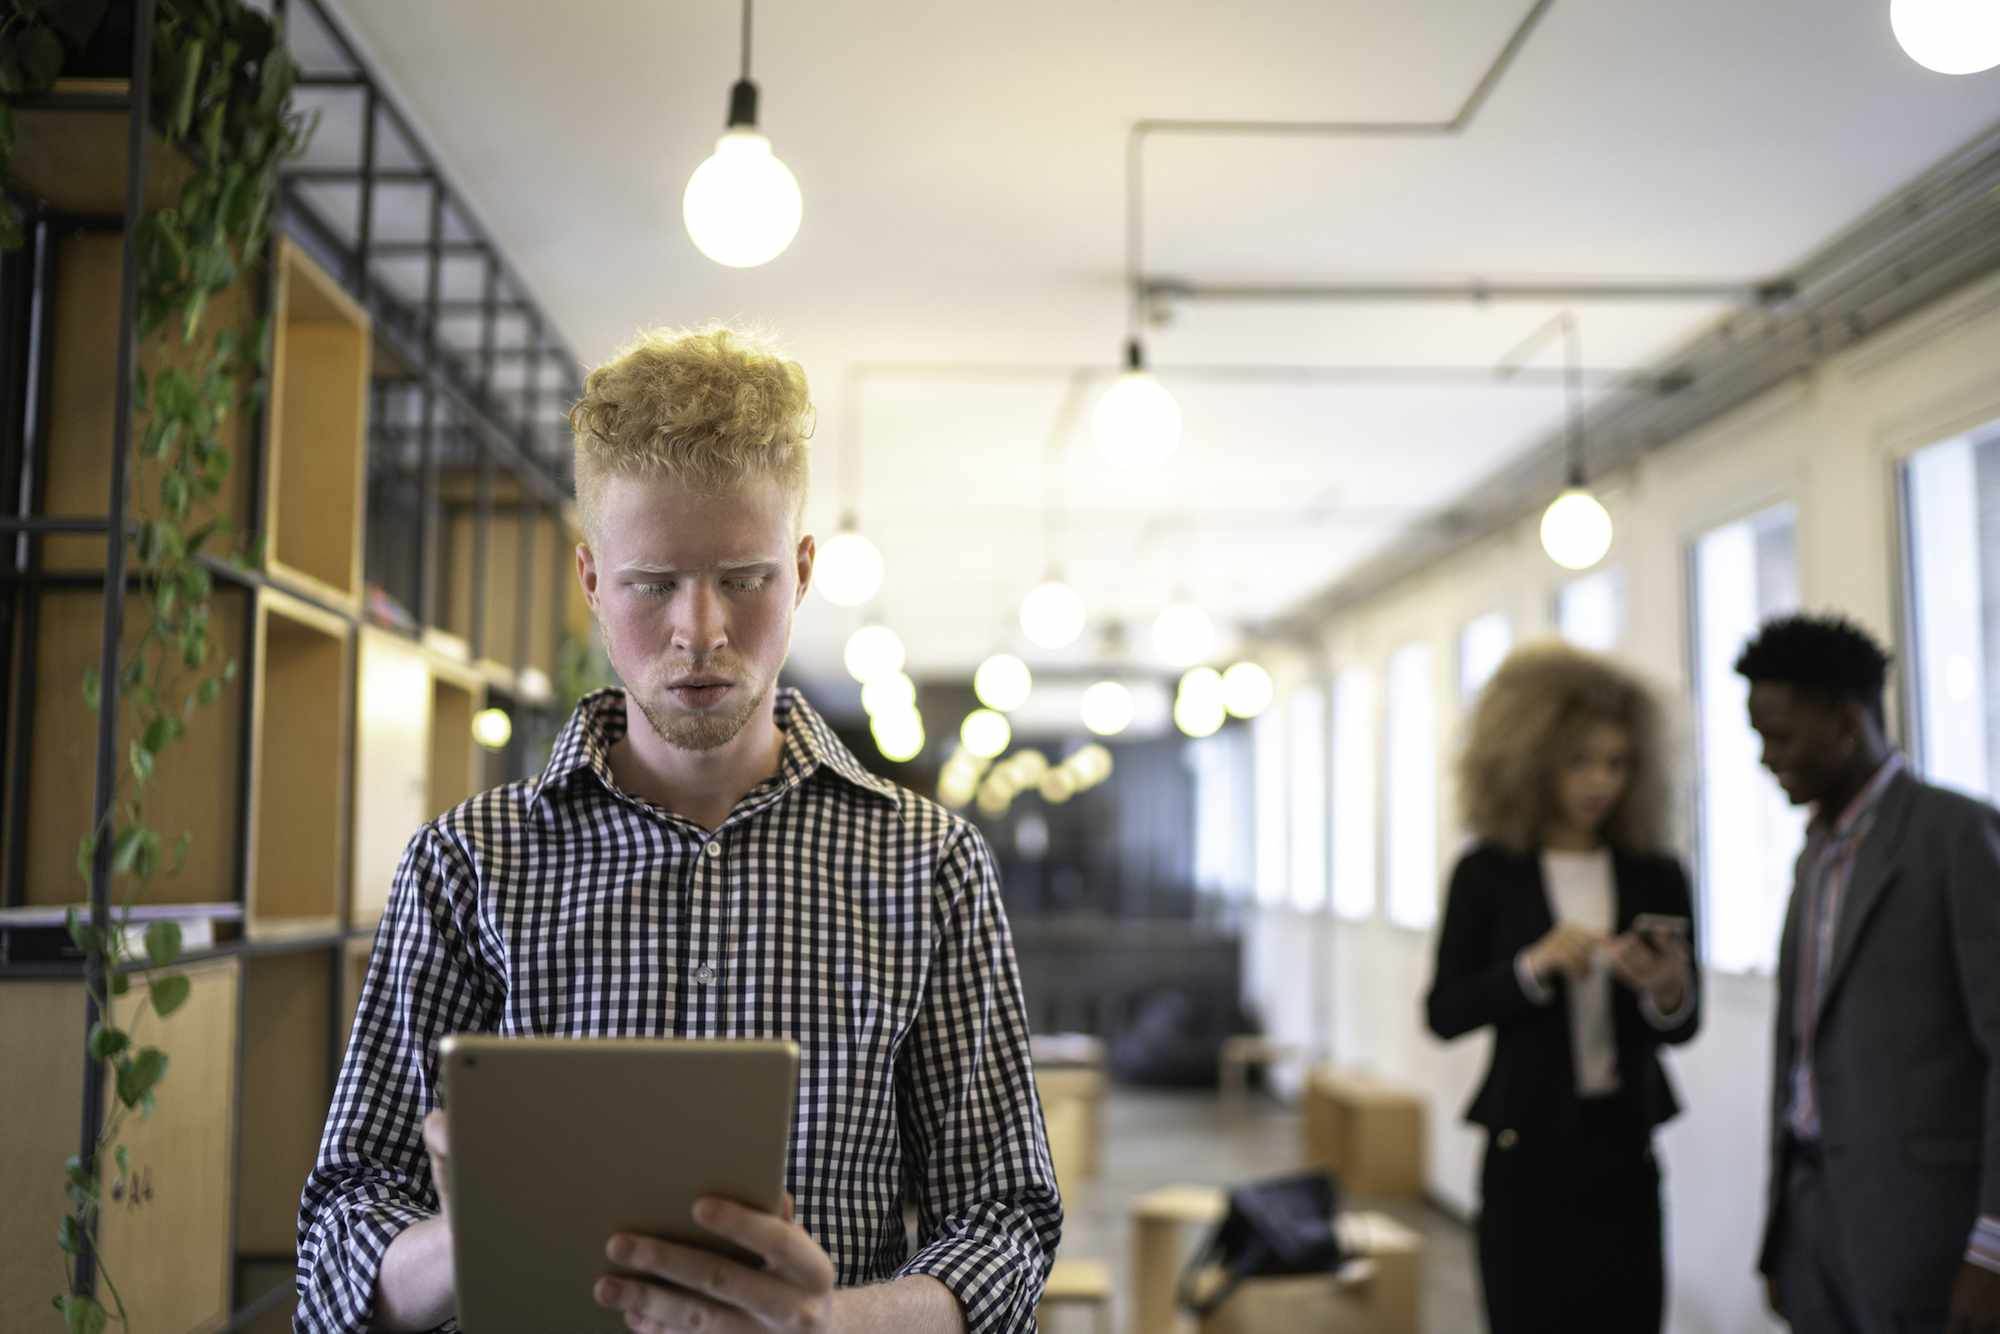 Man with albinism doing work on tablet in office setting